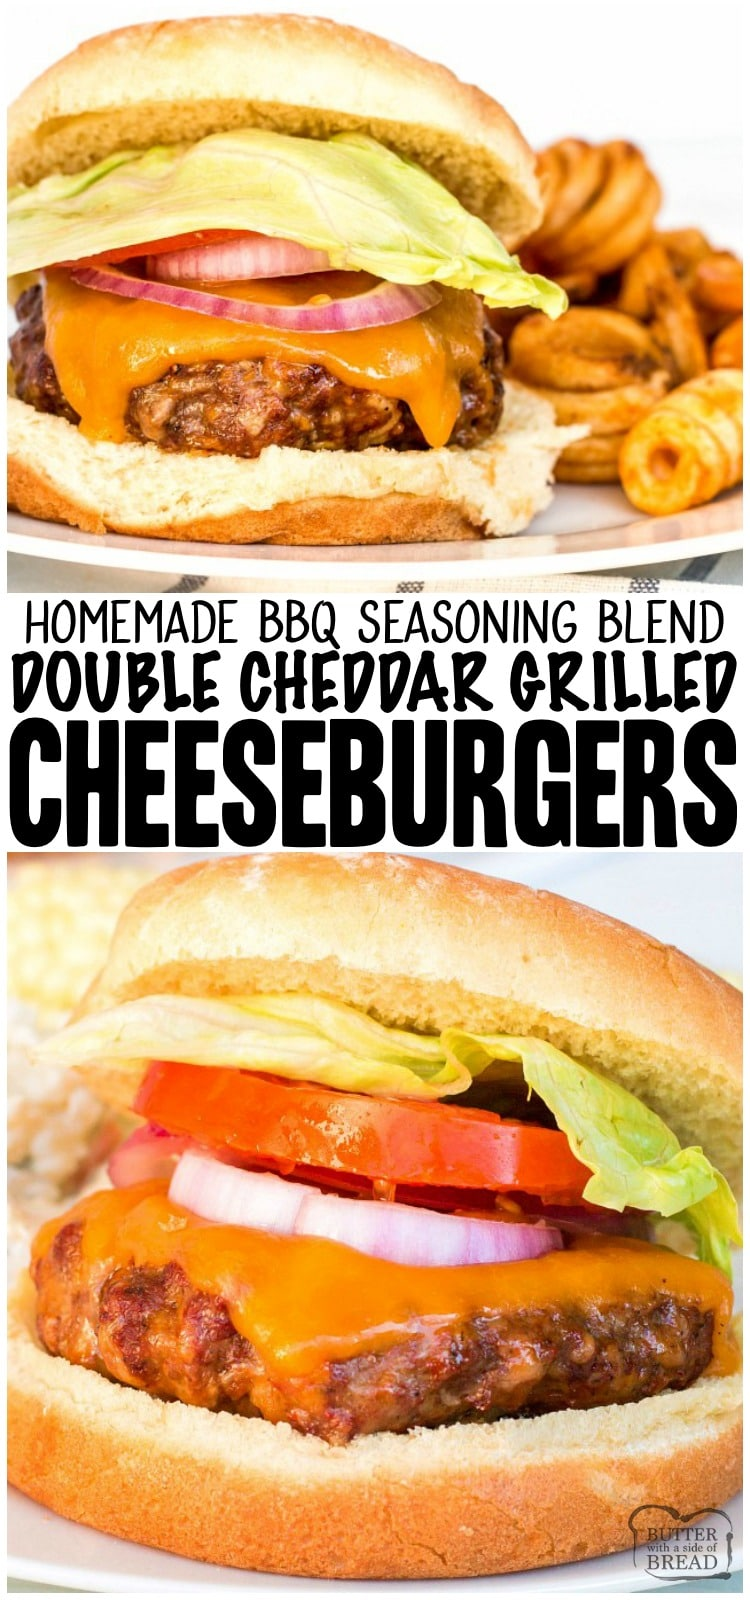 Easy Cheeseburgers are a delicious, lip smacking summertime BBQ staple at my house. With only four ingredients, this cheeseburger recipe is quick, easy and flavorful.